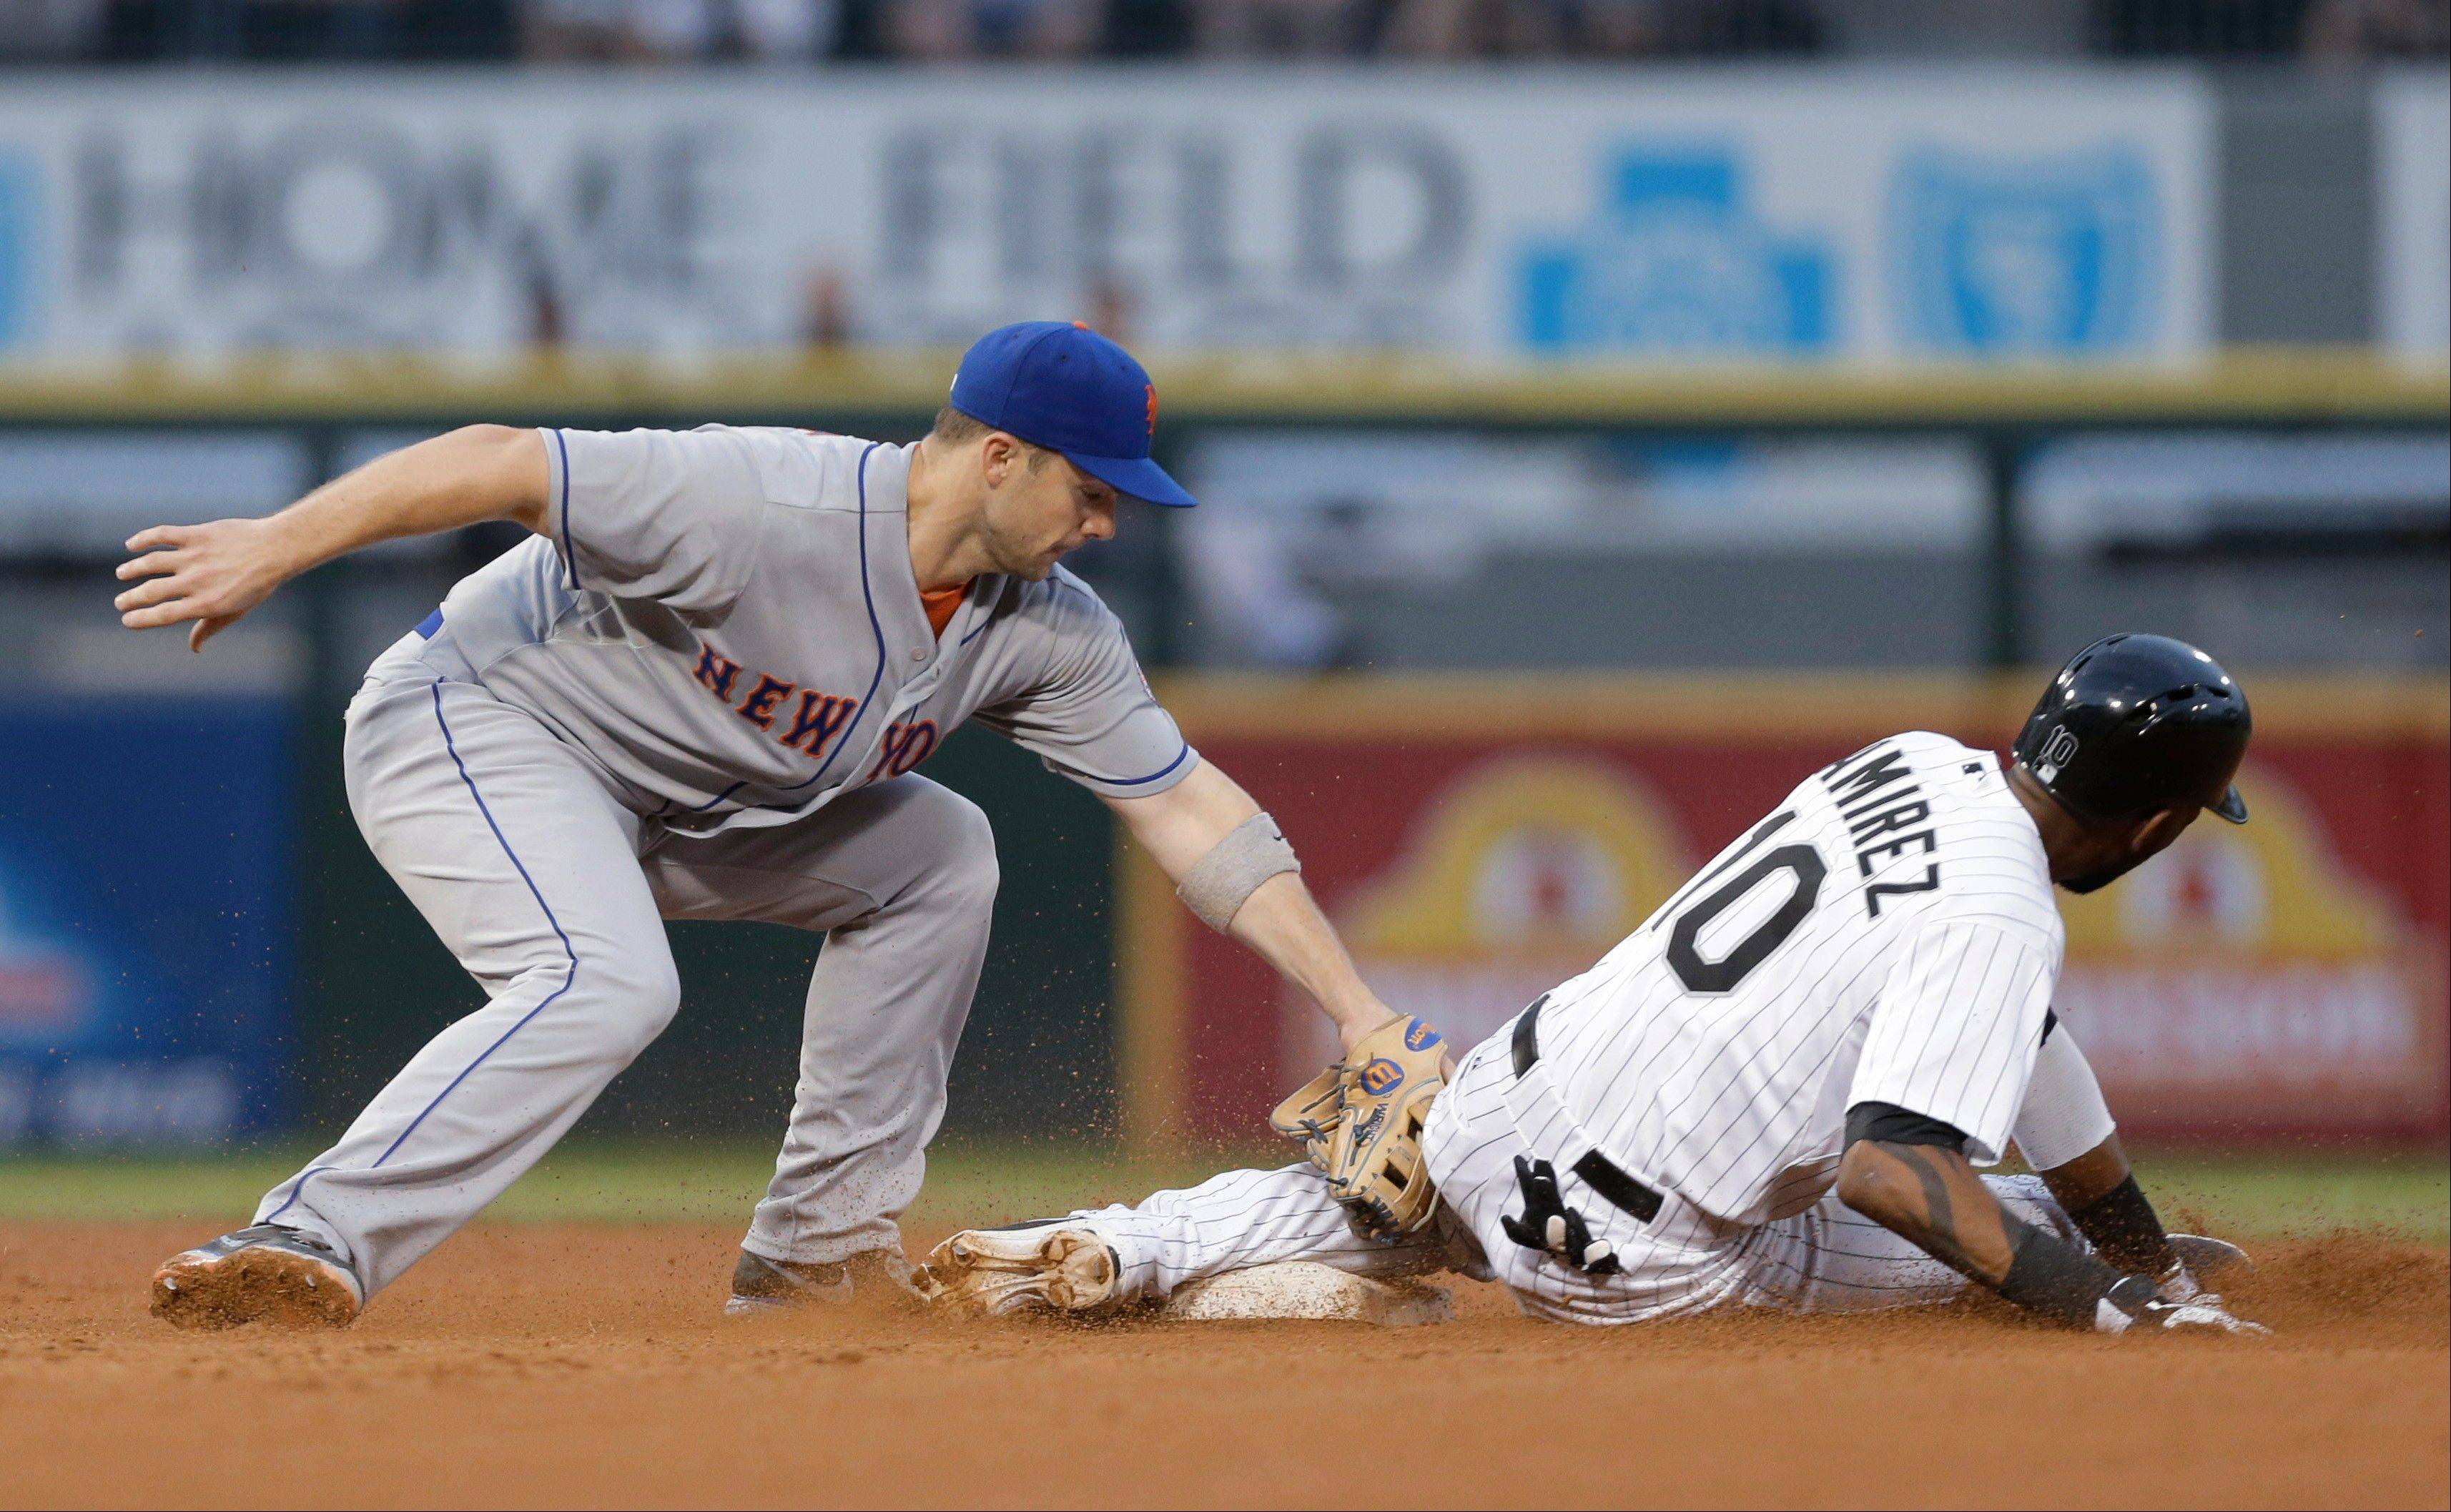 The White Sox' Alexei Ramirez, right, steals second as New York Mets third baseman David Wright applies a late tag during the fourth inning of an interleague baseball game on Wednesday, June 26, 2013, in Chicago.